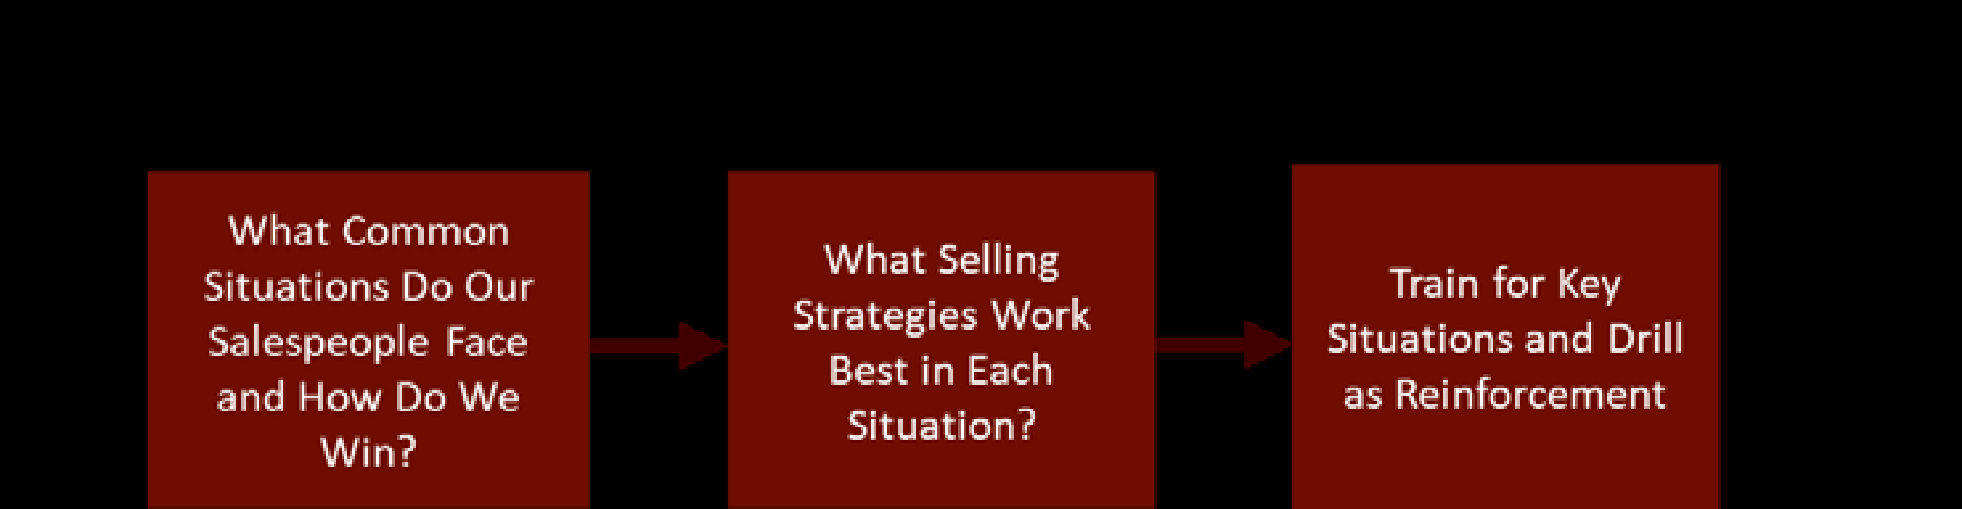 Selling Power Blog: Sales Process and Methodology